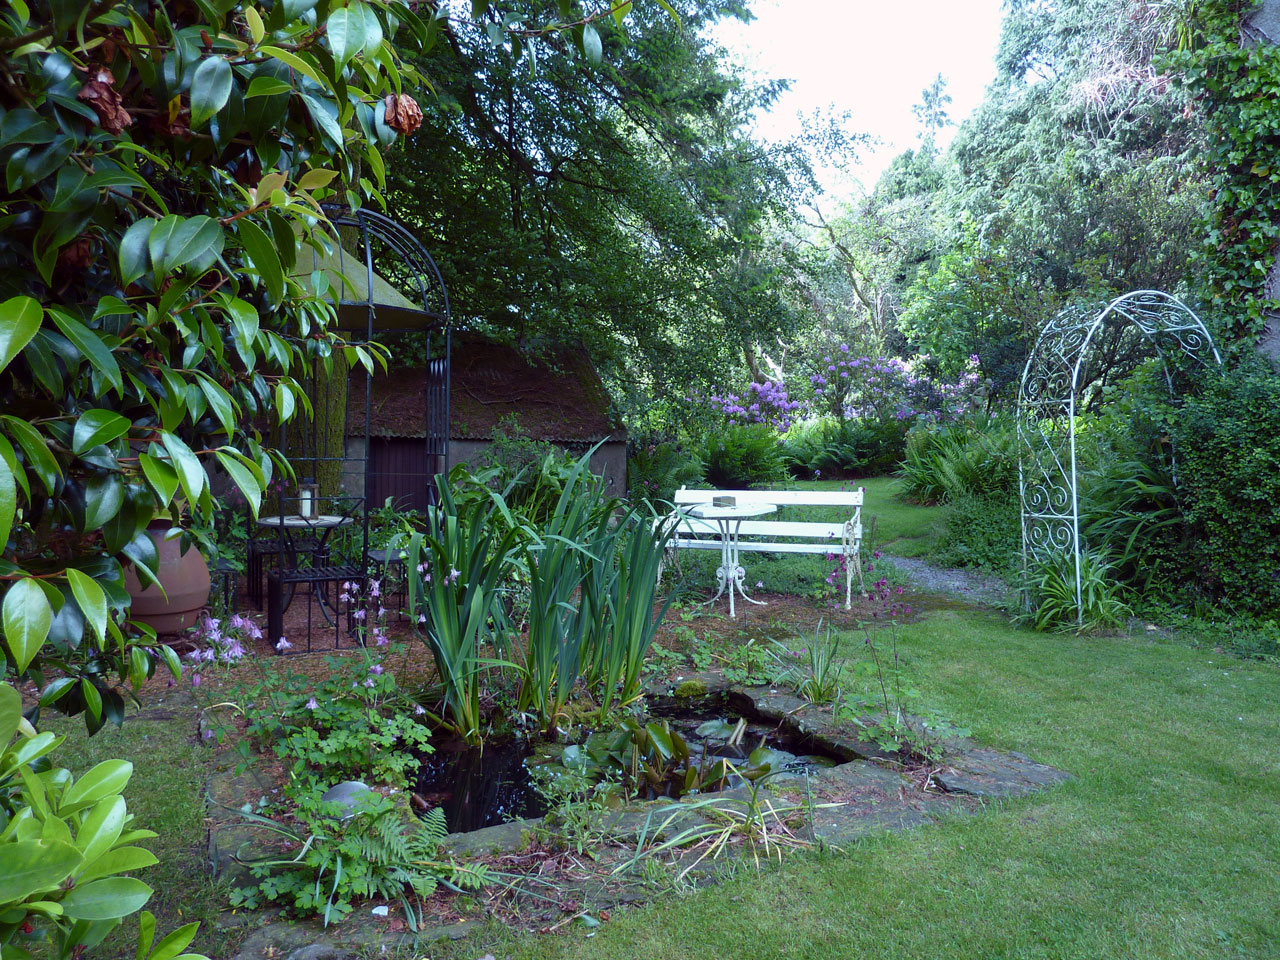 The gardens at Cullintra House offer many quiet spots for sitting and relaxing